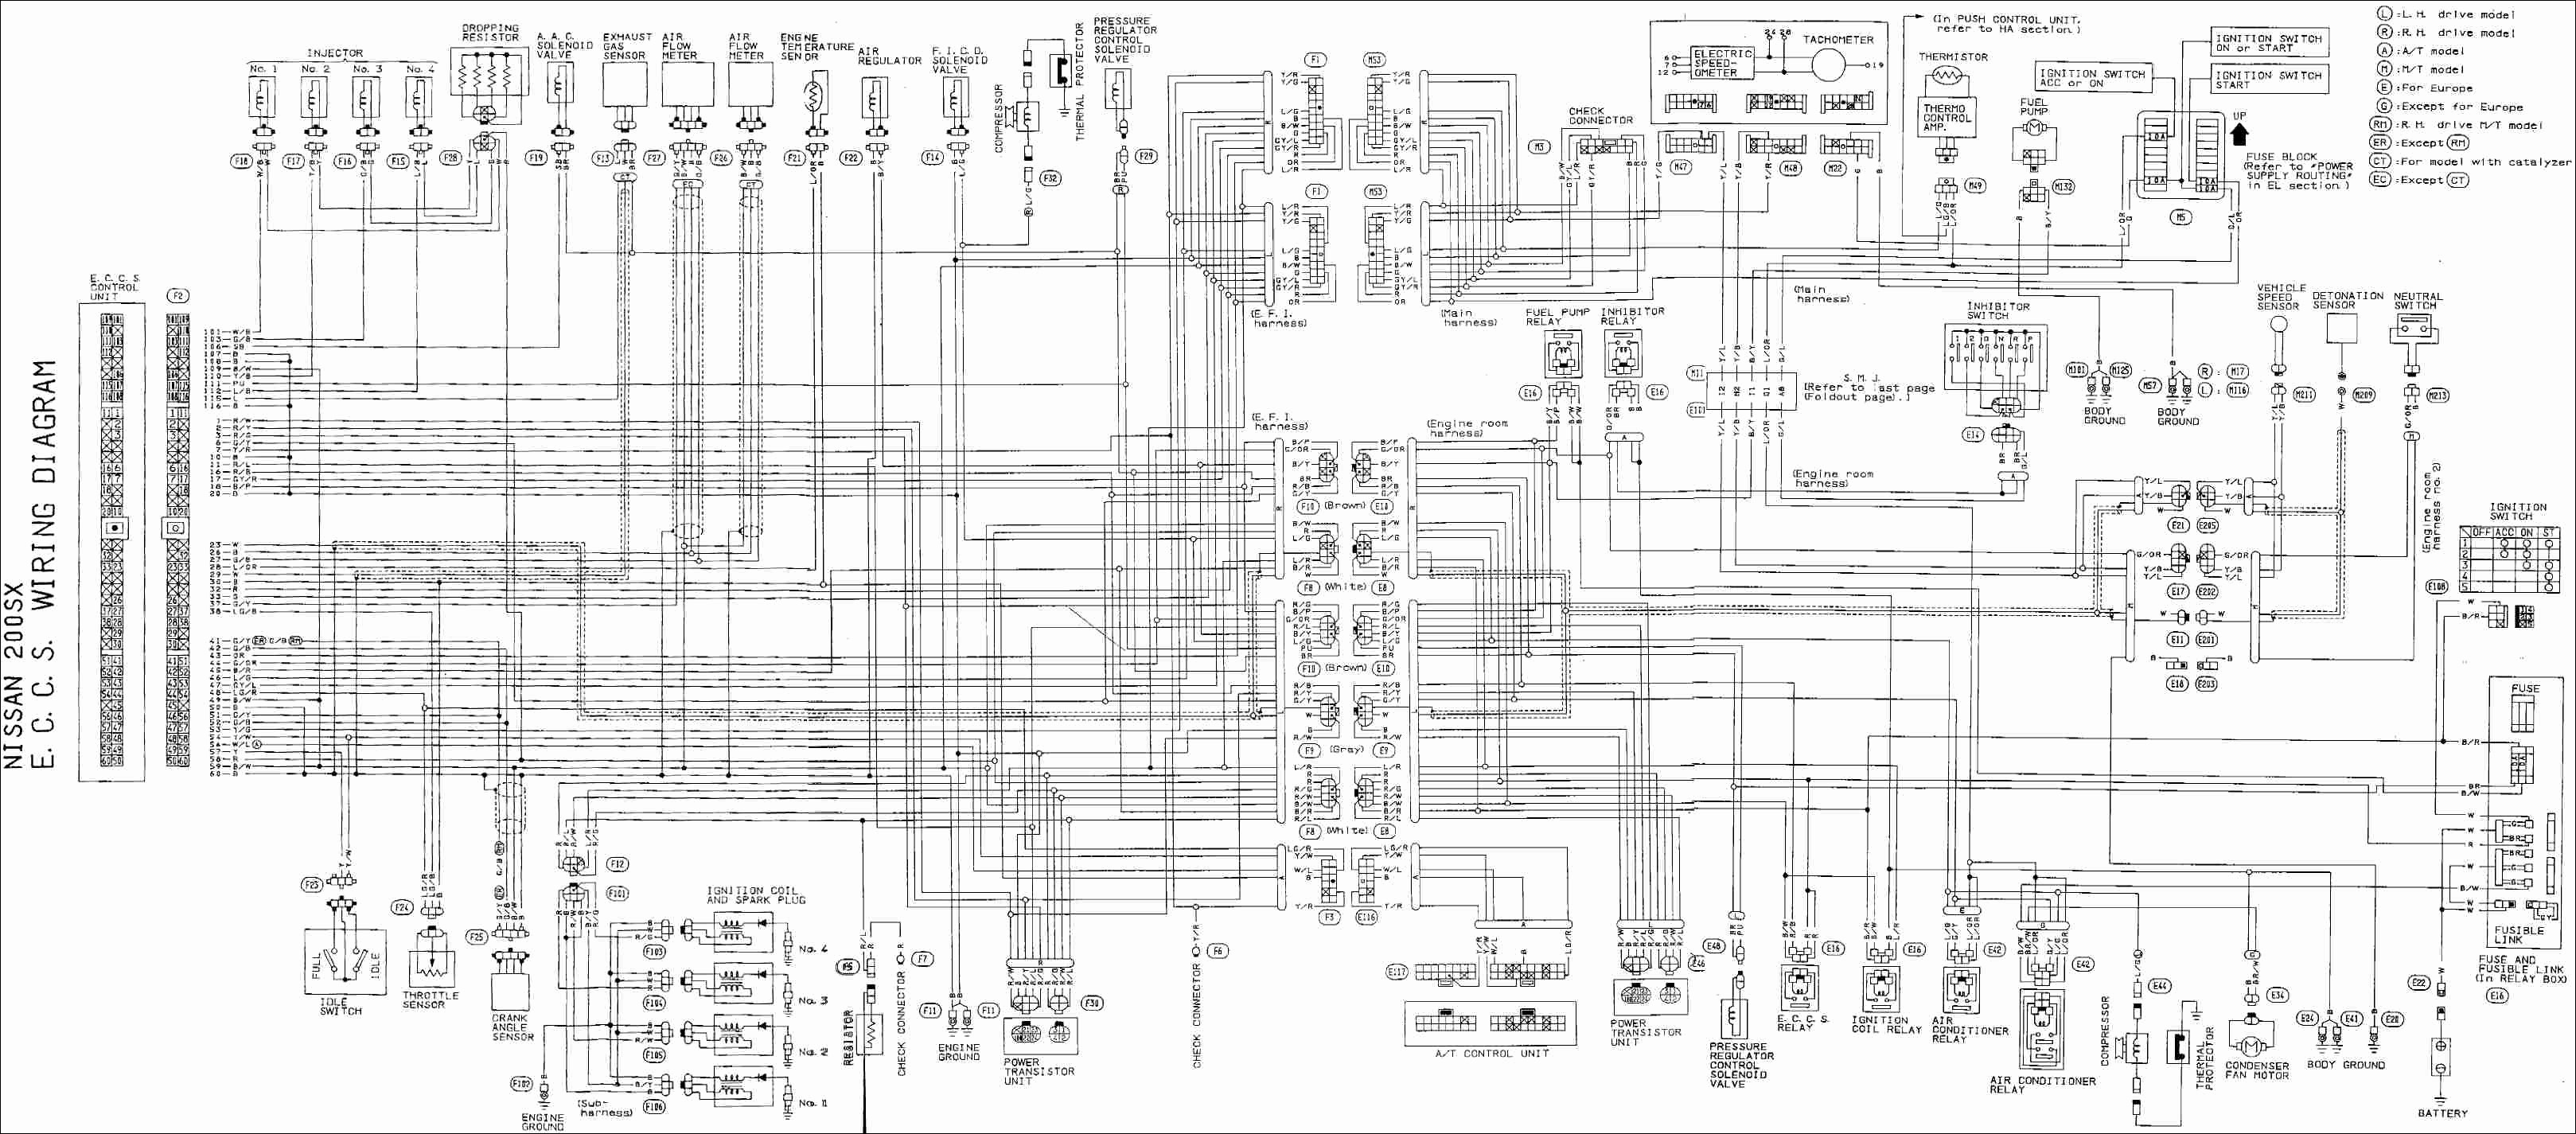 Ford Hei Distributor Wiring Diagram Inspirational Nissan Ka24 Distributor Wiring Diagram Wire Center •